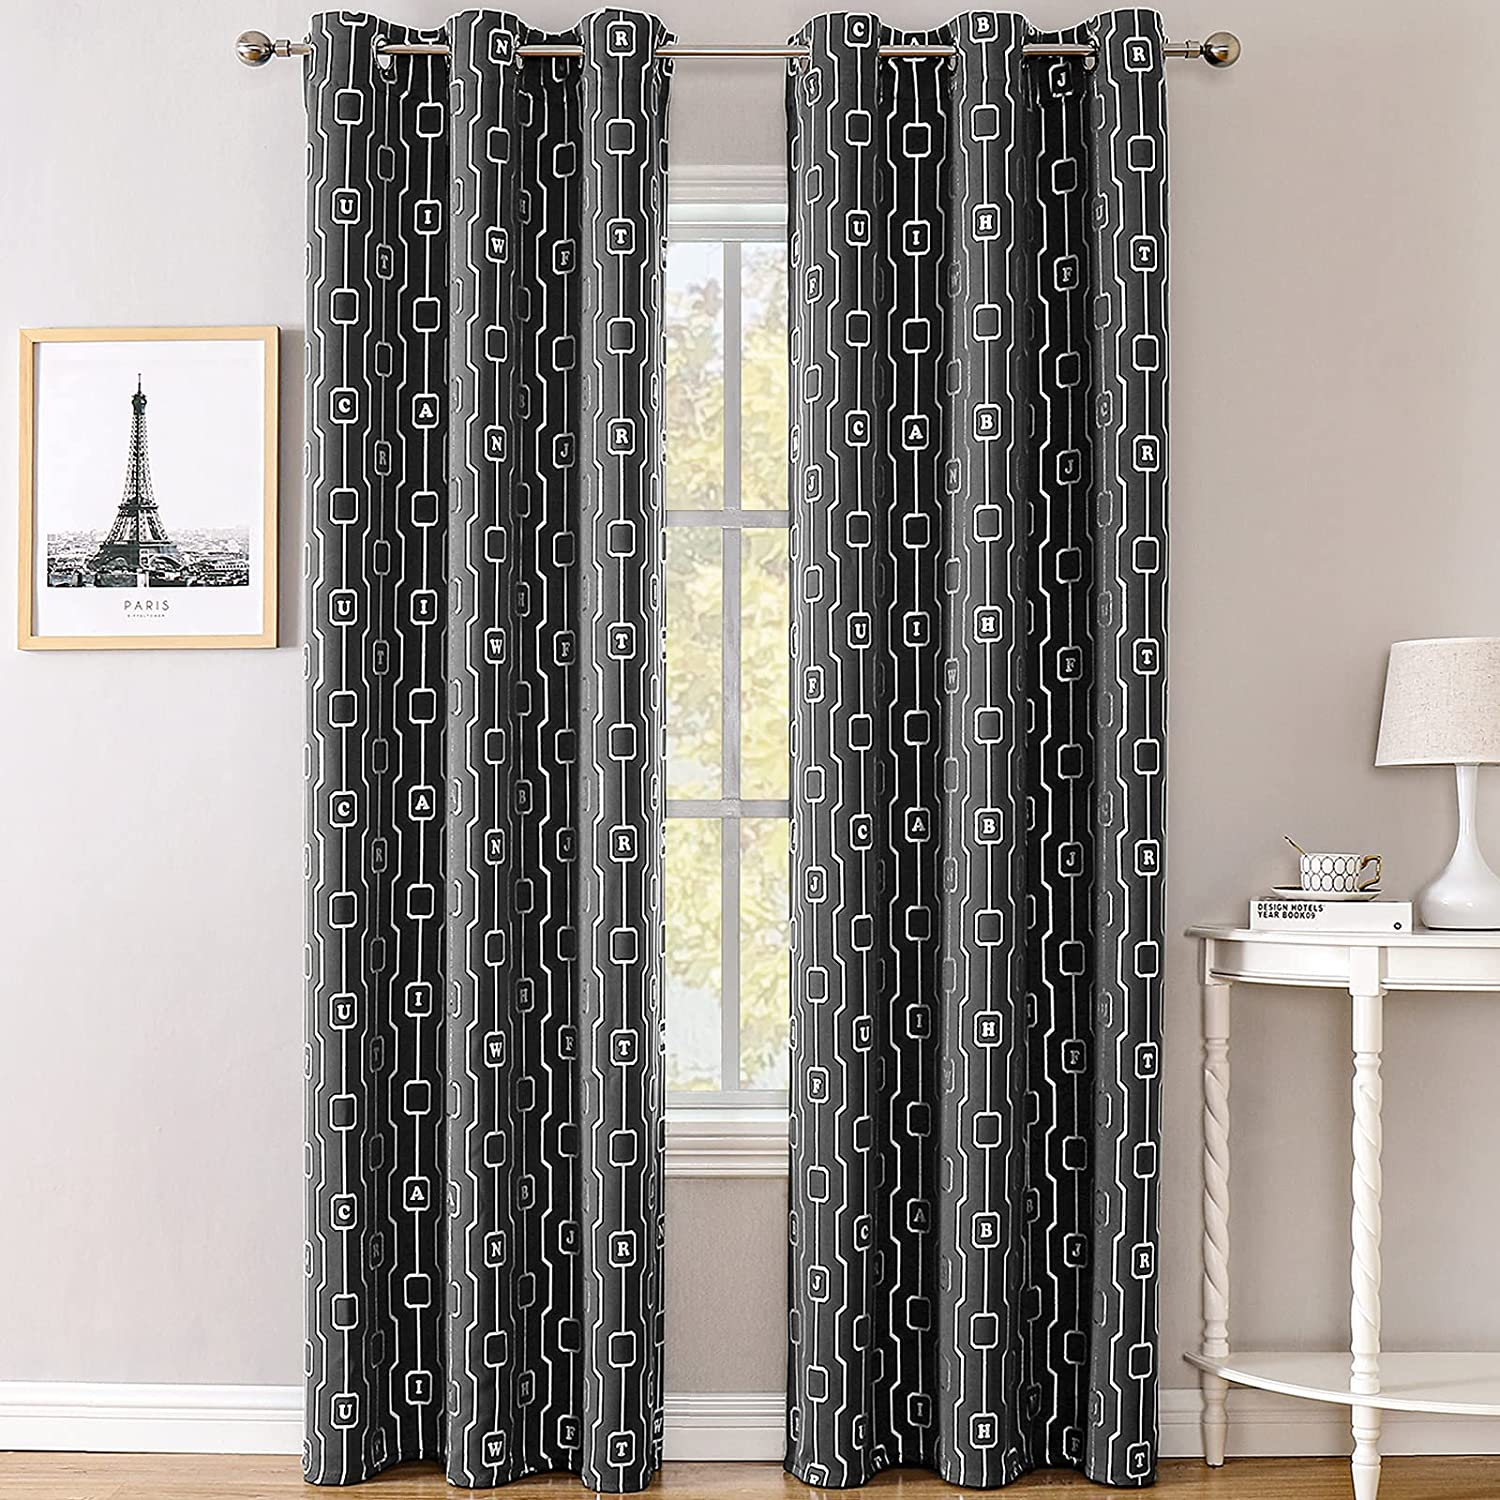 BUHUA Choice Blackout Curtains Outlet SALE for Dr Room Bedroom Darkening